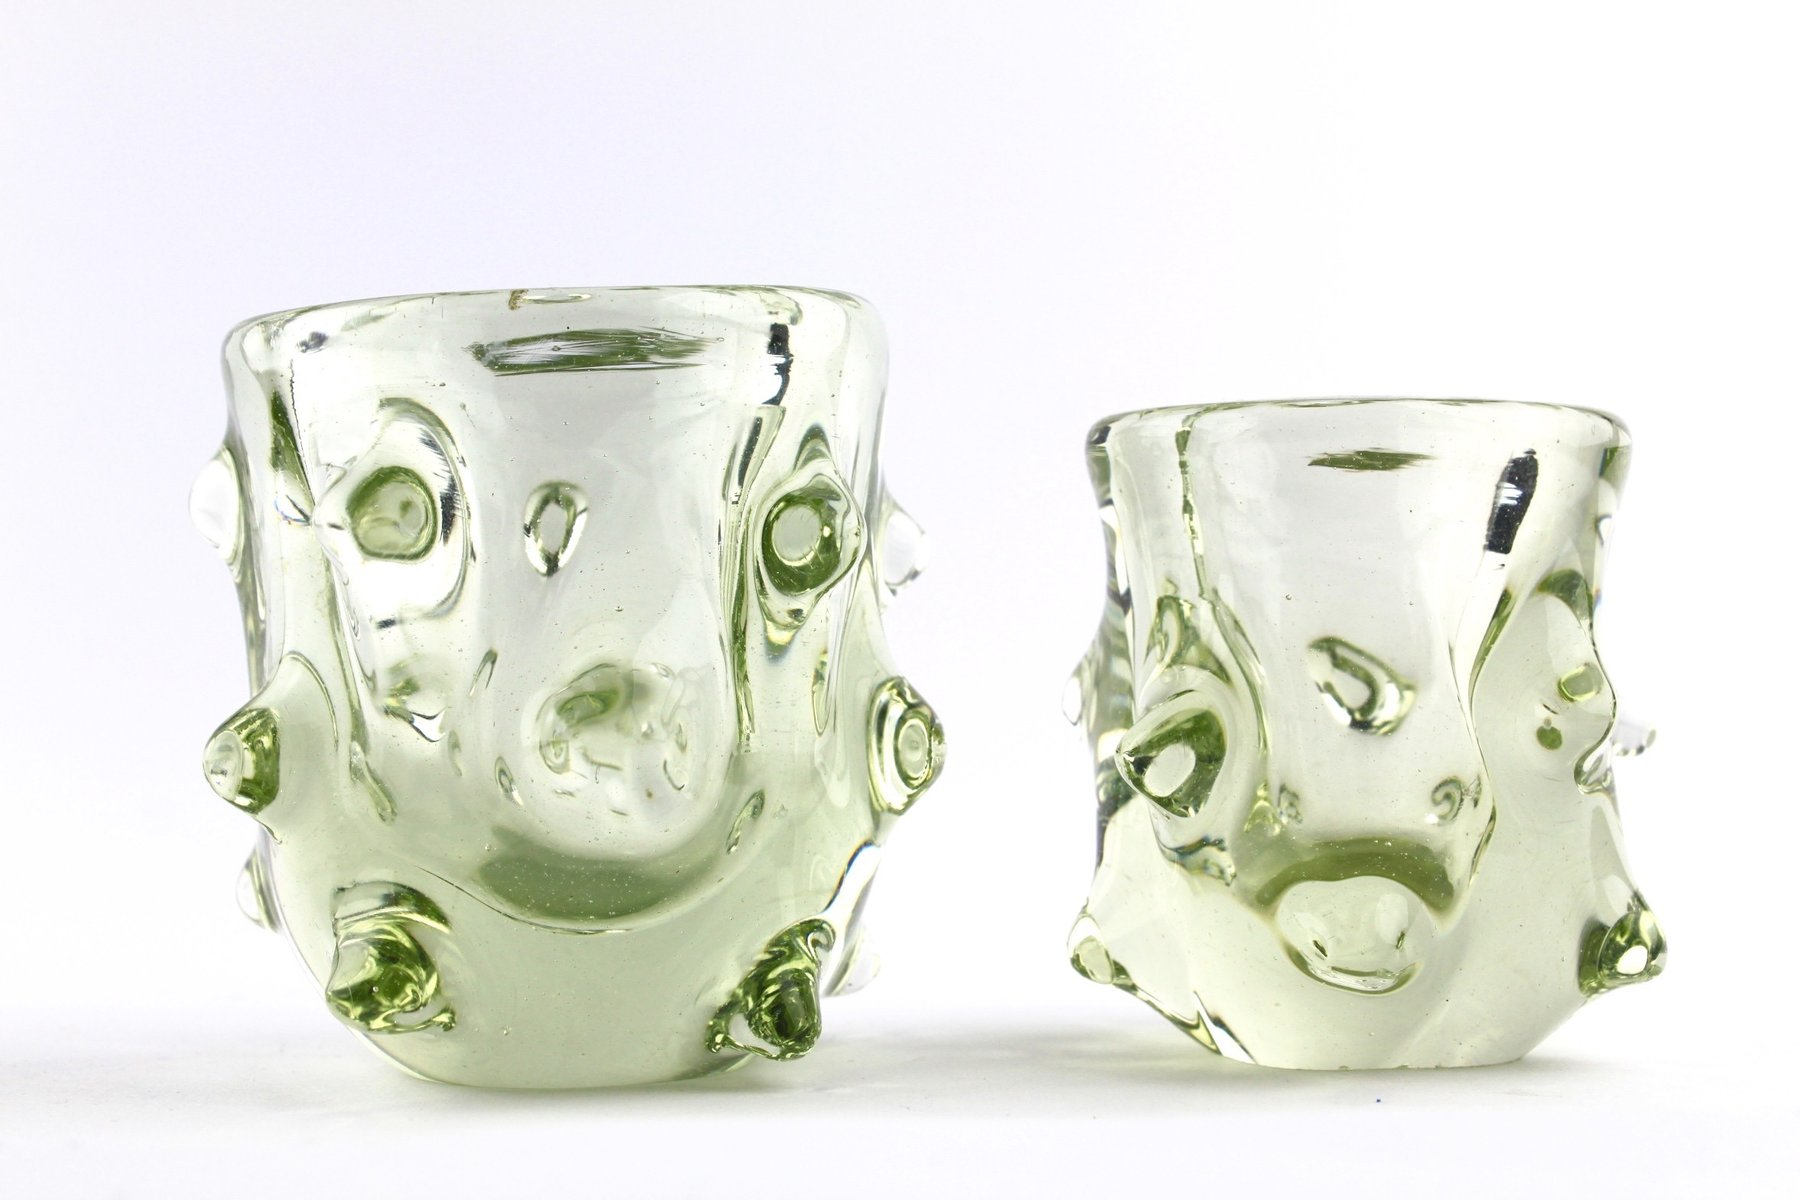 Small murano glass vases 1960s set of 2 for sale at pamono small murano glass vases 1960s set of 2 floridaeventfo Image collections